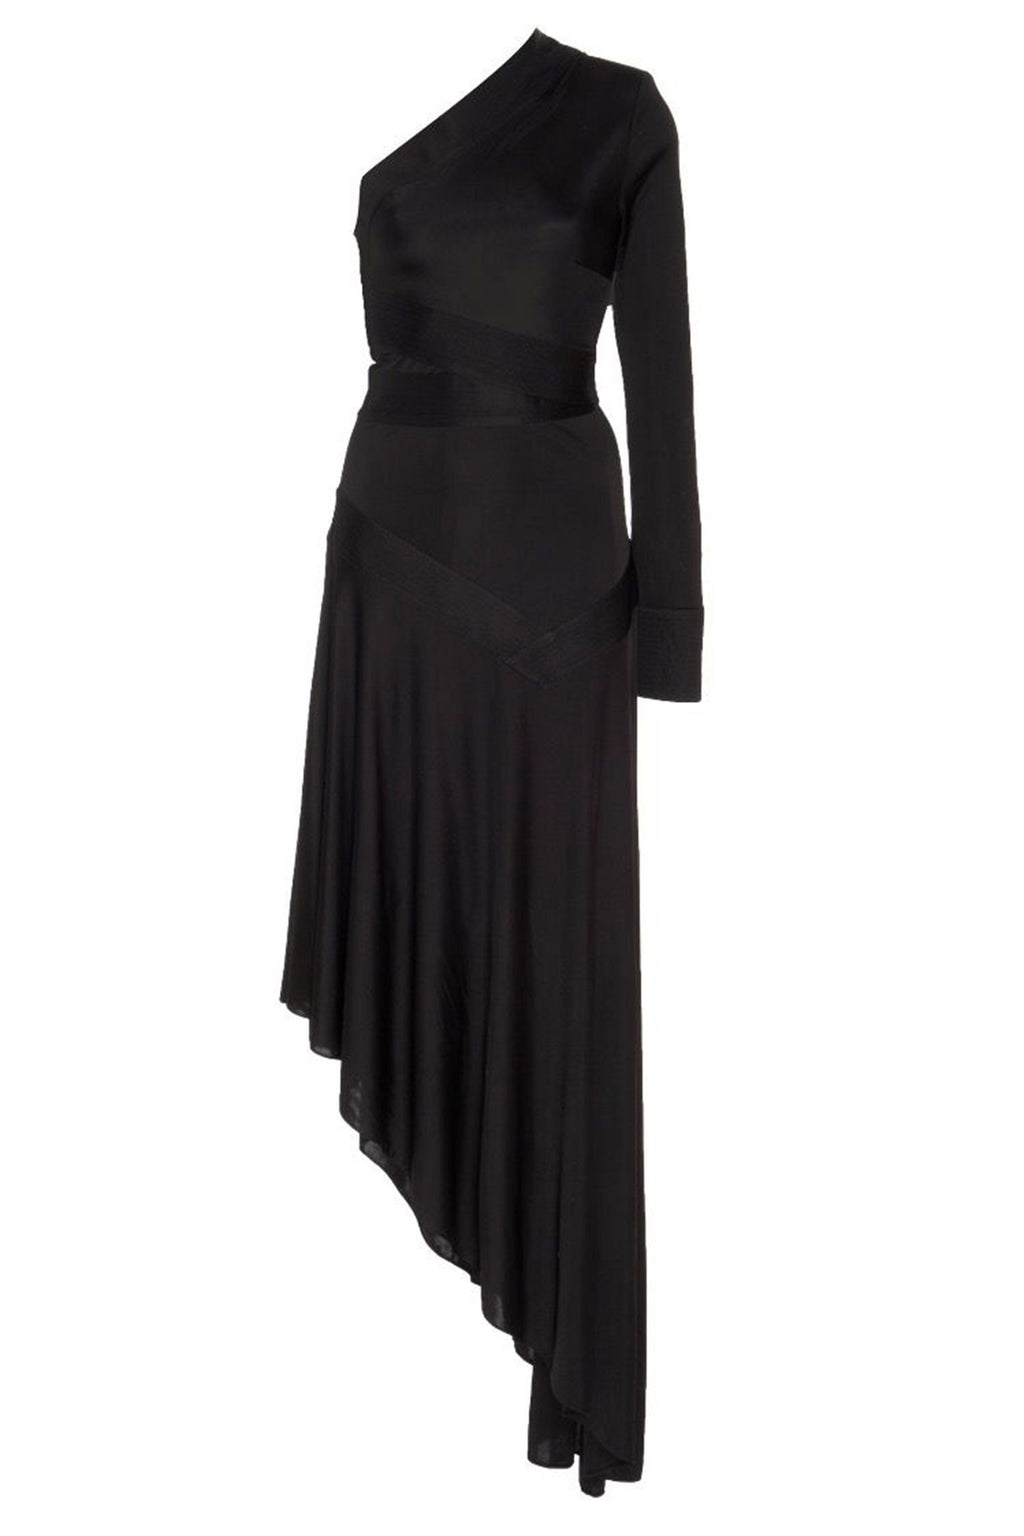 ALEXIS | Addison Dress - Black